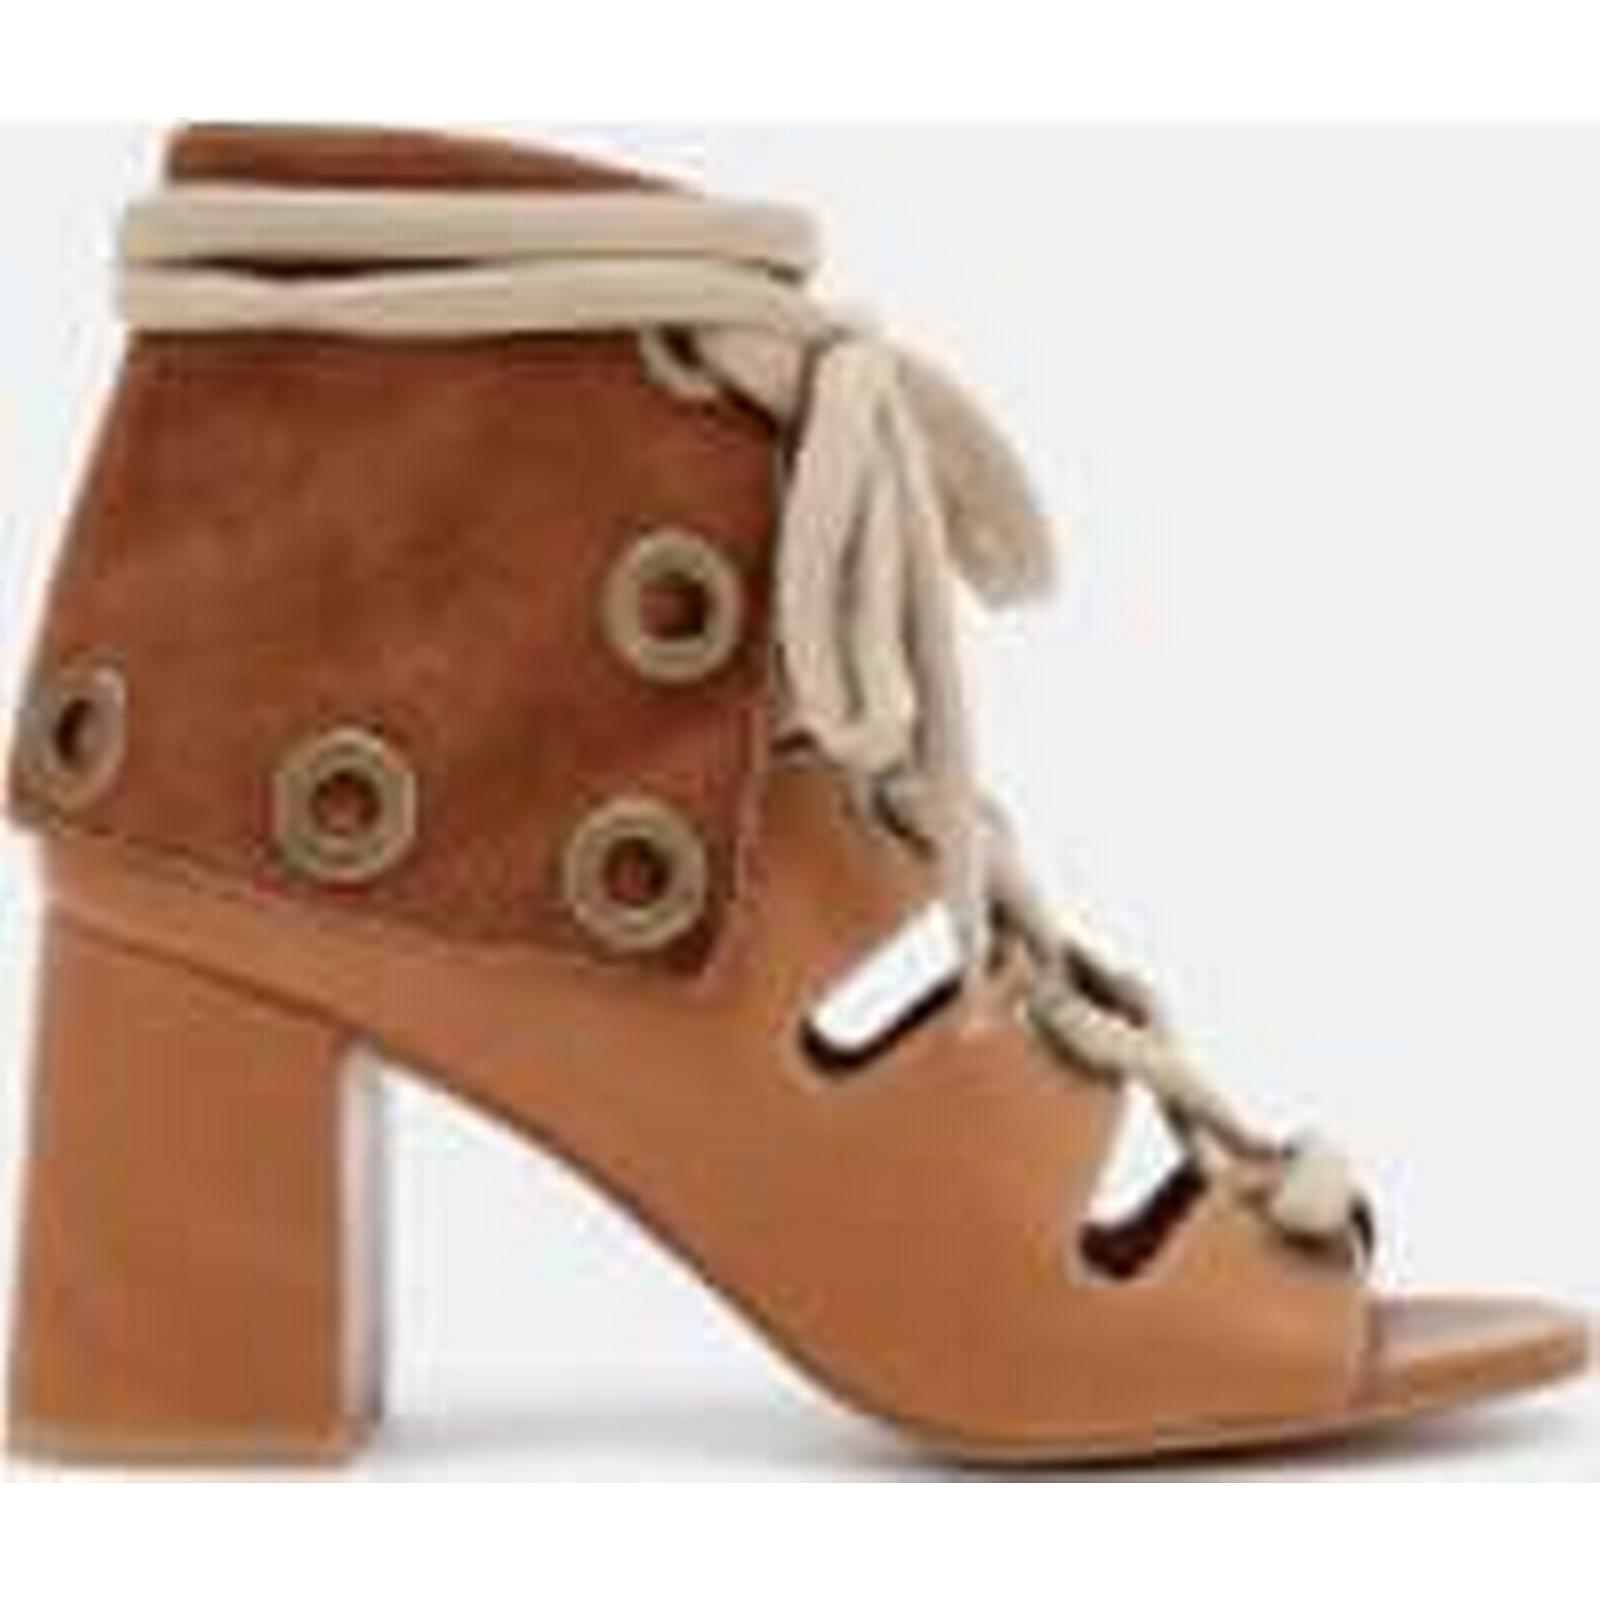 See By Heeled Chloé Women's Calf Leather Heeled By Sandals - Cuoio - UK 4 - Tan dcdb4c